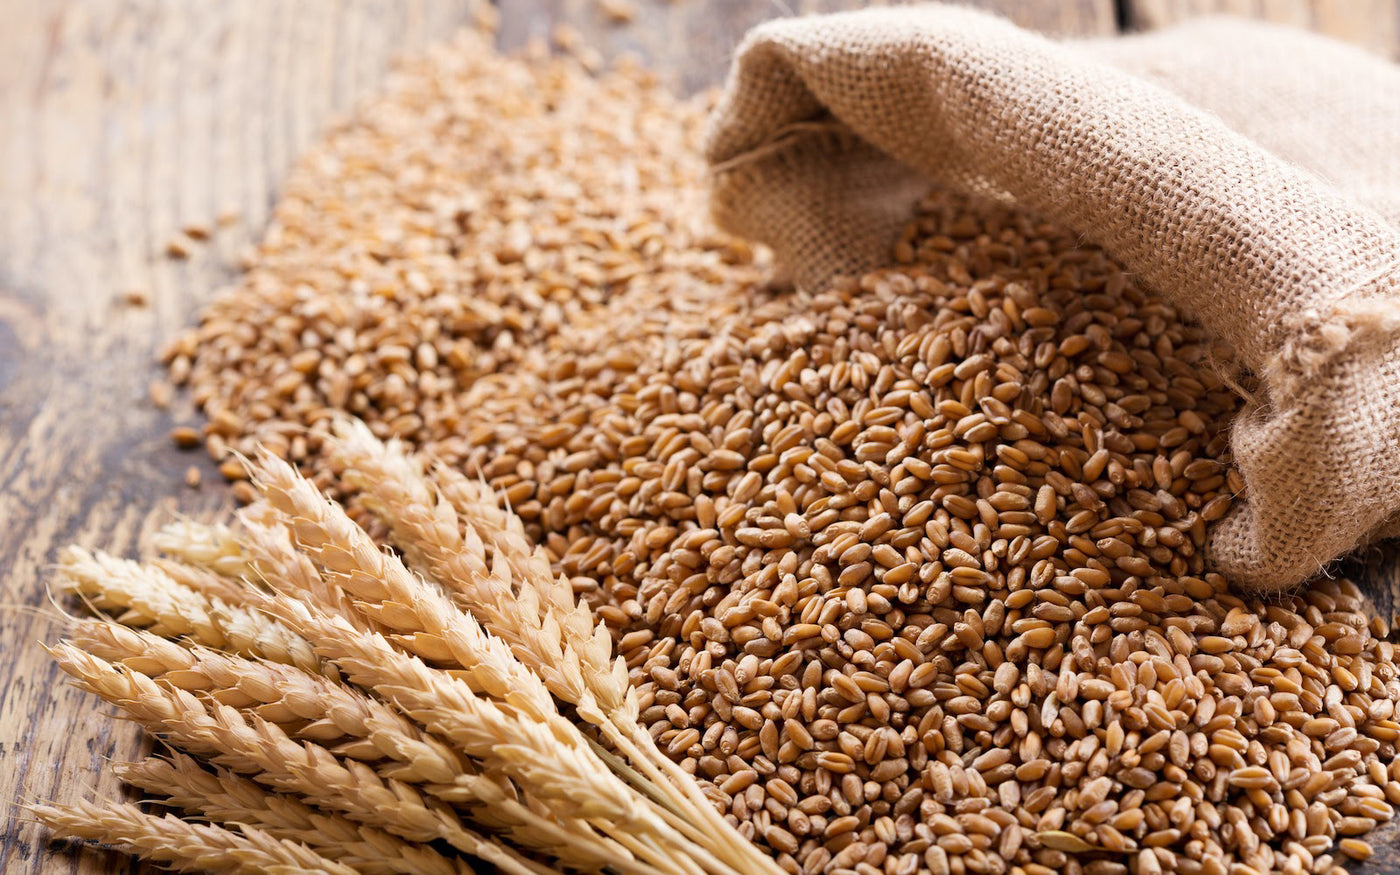 Is wheat bad for you: A burlap bag of wheat spilling out onto a table